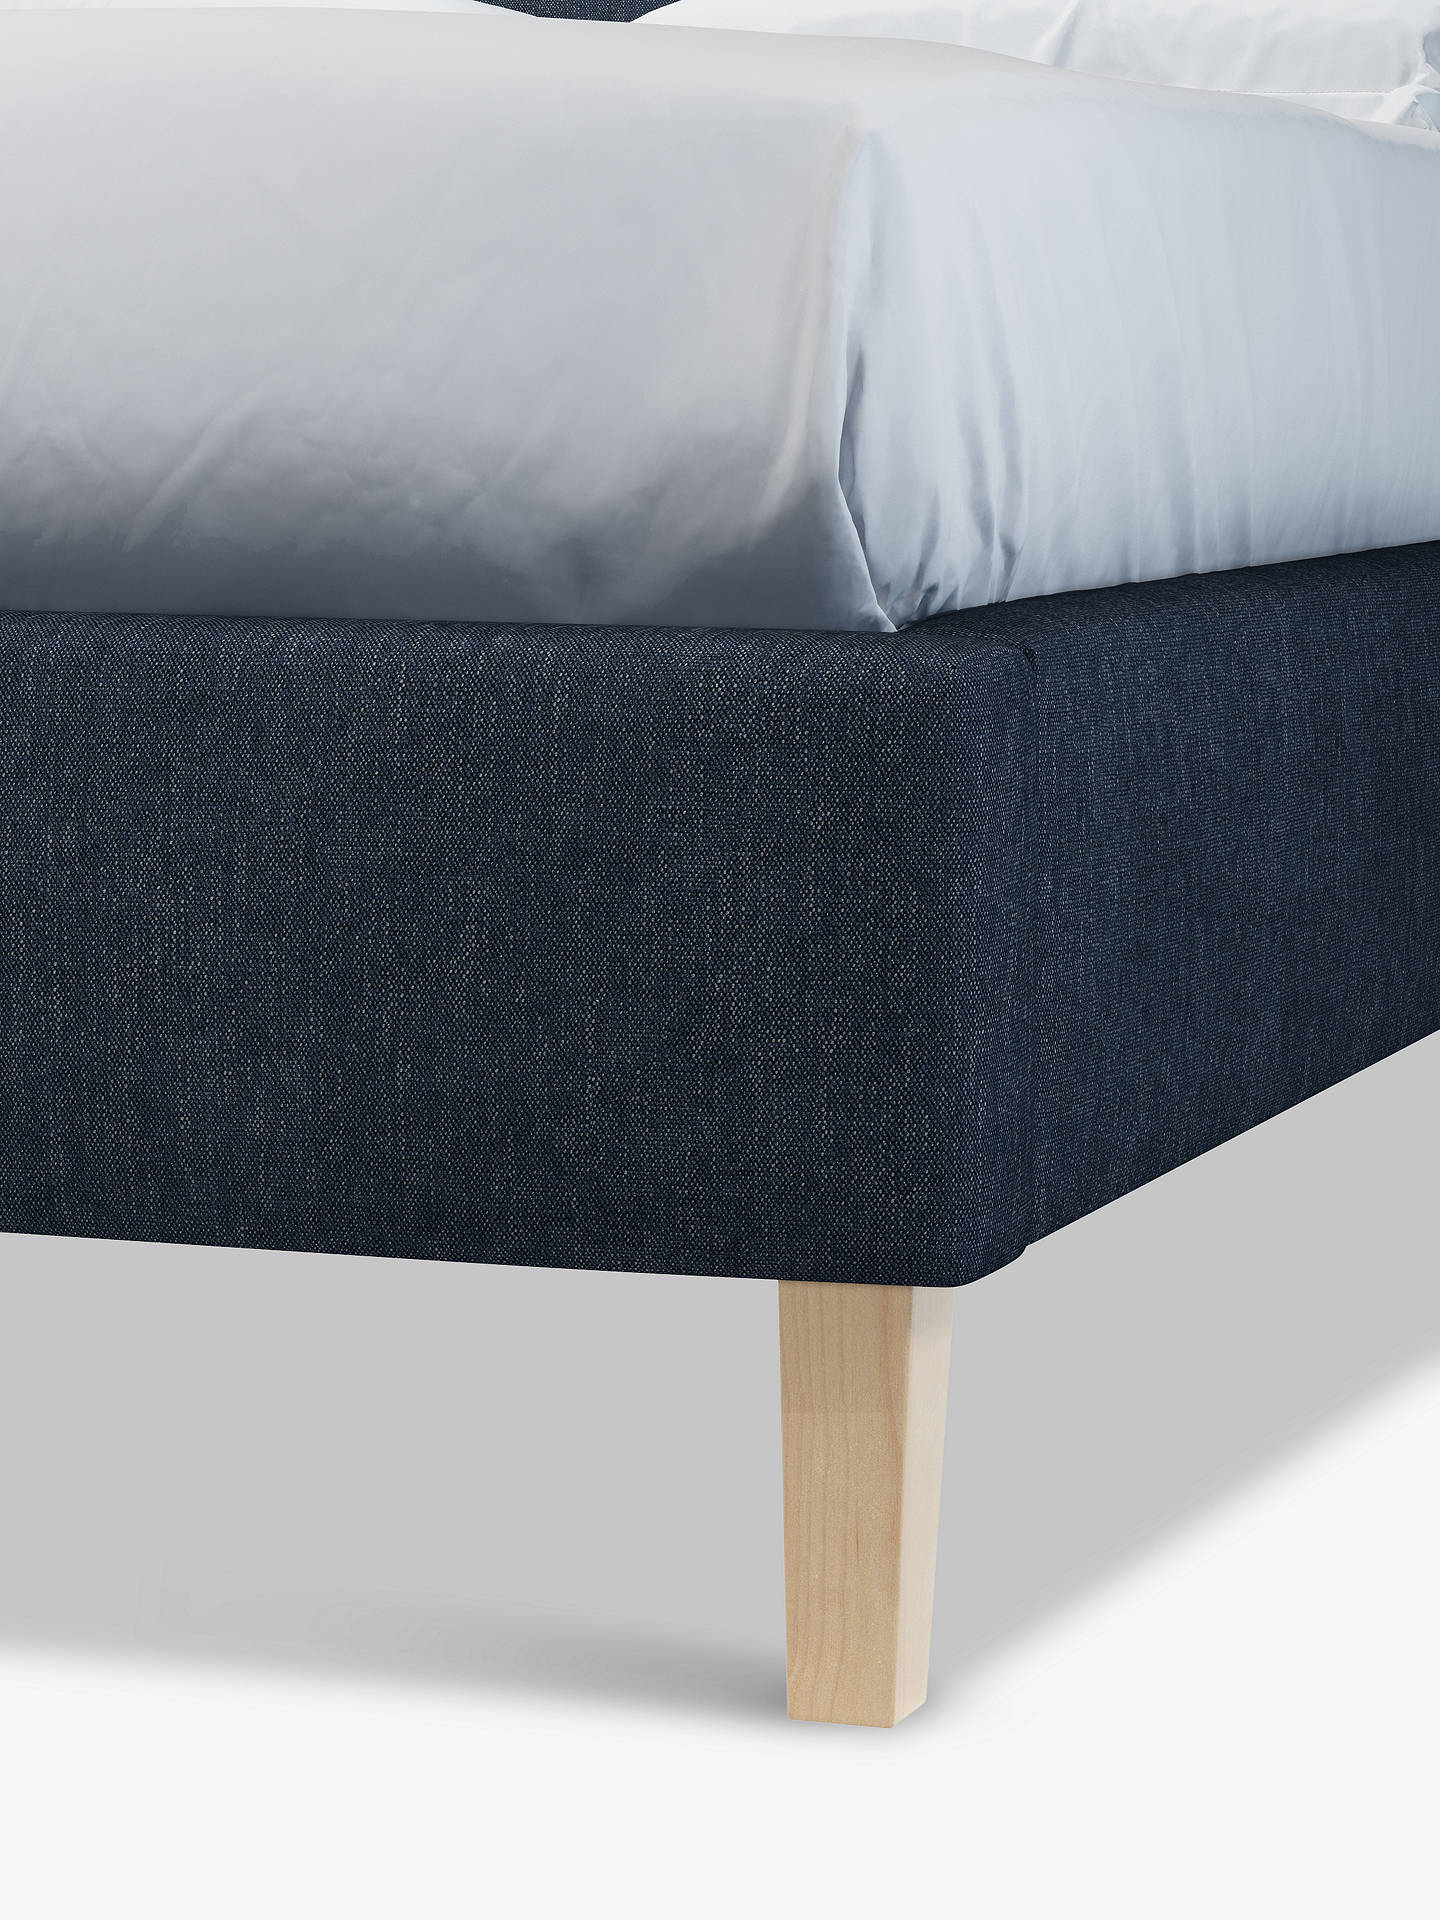 Buy John Lewis & Partners Emily Upholstered Bed Frame, Small Double, Erin Midnight Online at johnlewis.com